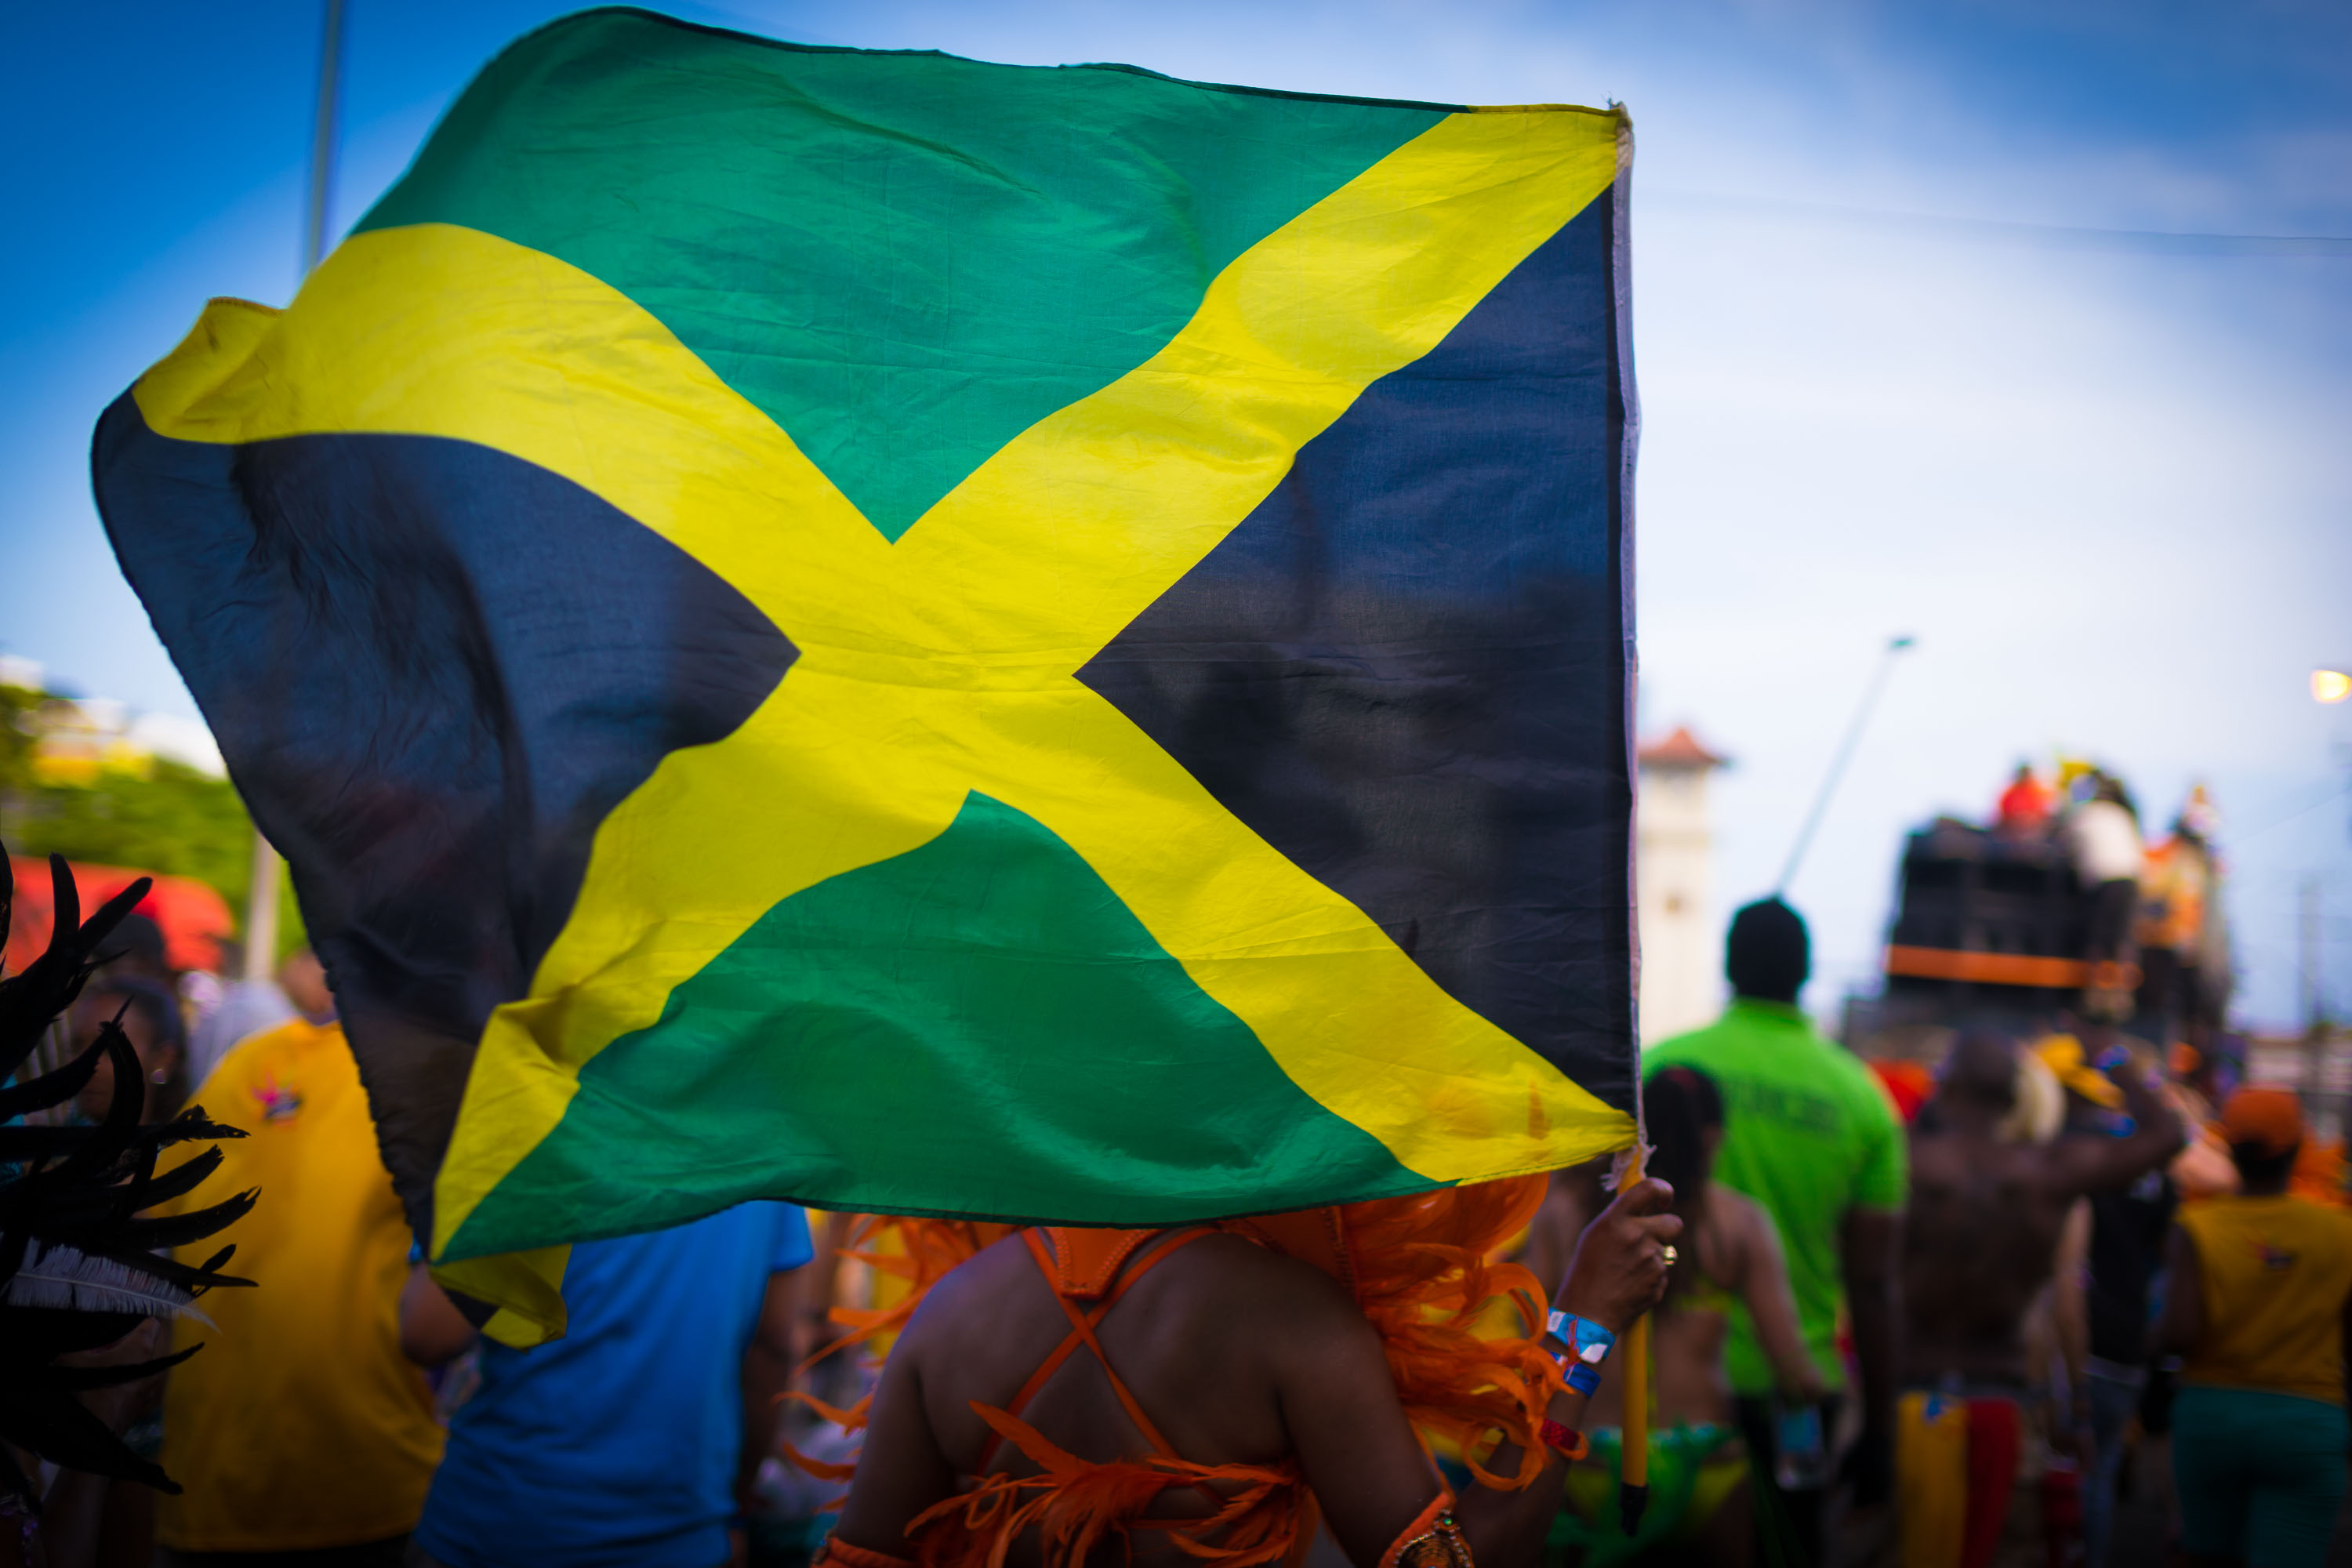 Missing Trinidad carnival? There is a fix for that. Try  Carnival in Jamaica!